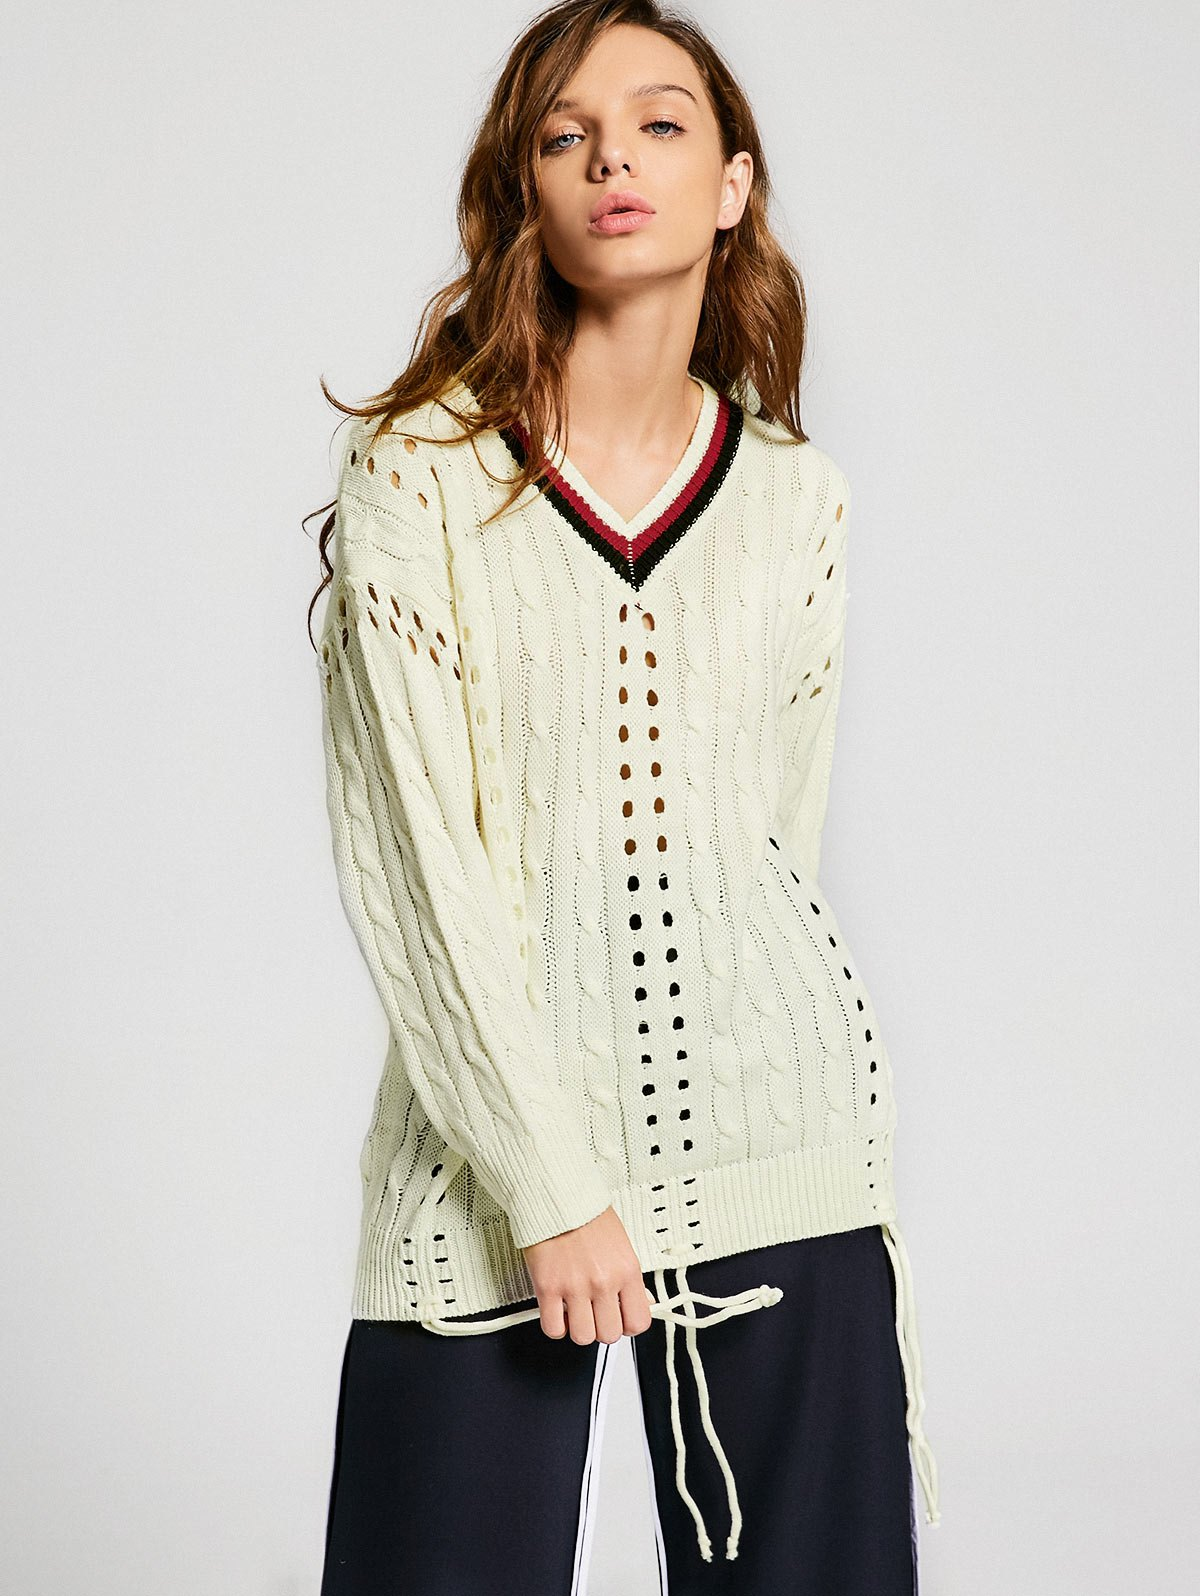 Contrast Hollow Out Cable Knit Sweater 220335901